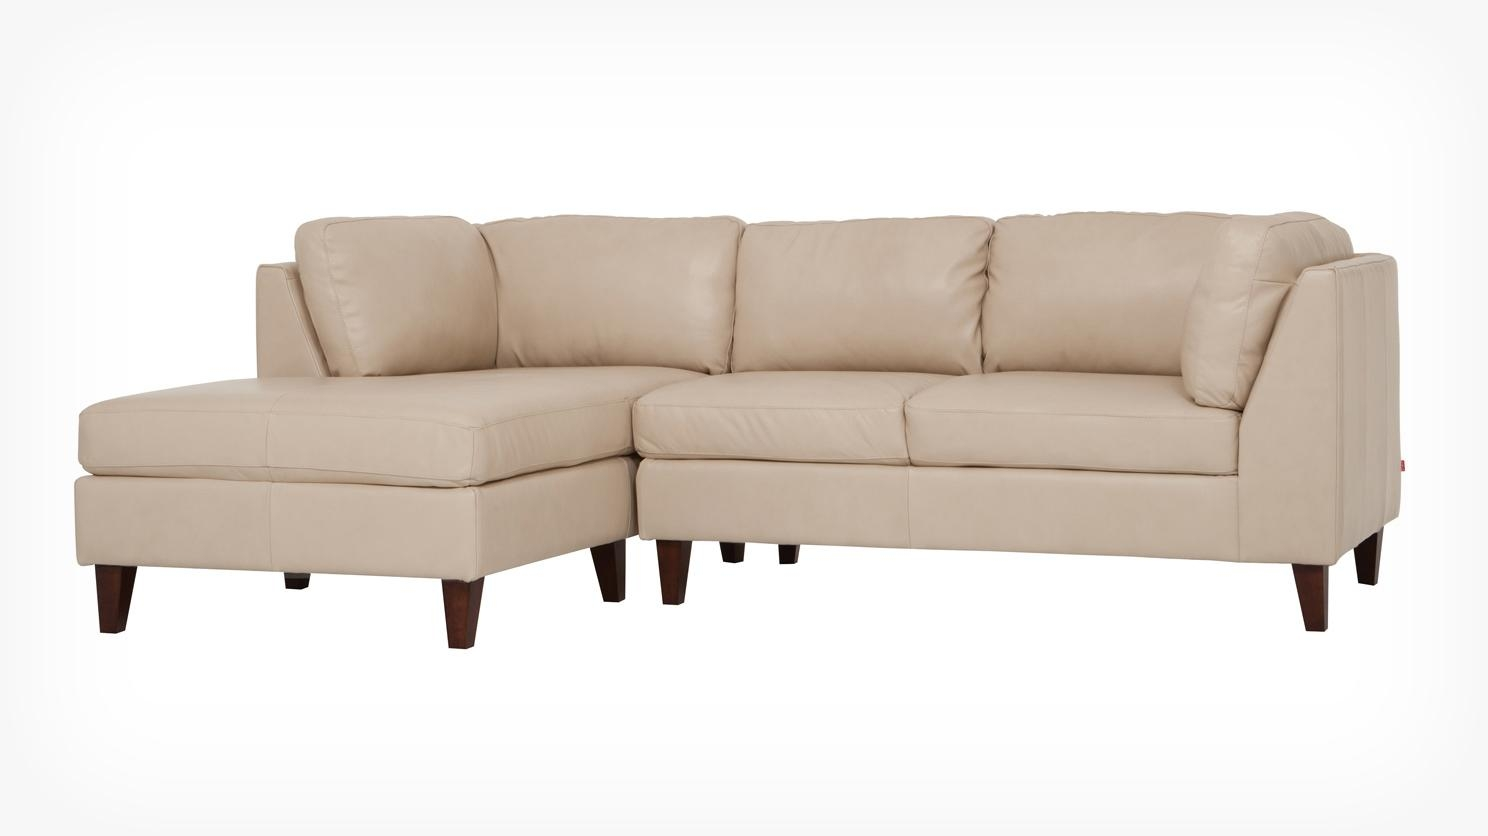 Eq3 | Salema 2 Piece Sectional Sofa With Chaise – Leather With Small 2 Piece Sectional (Image 9 of 20)